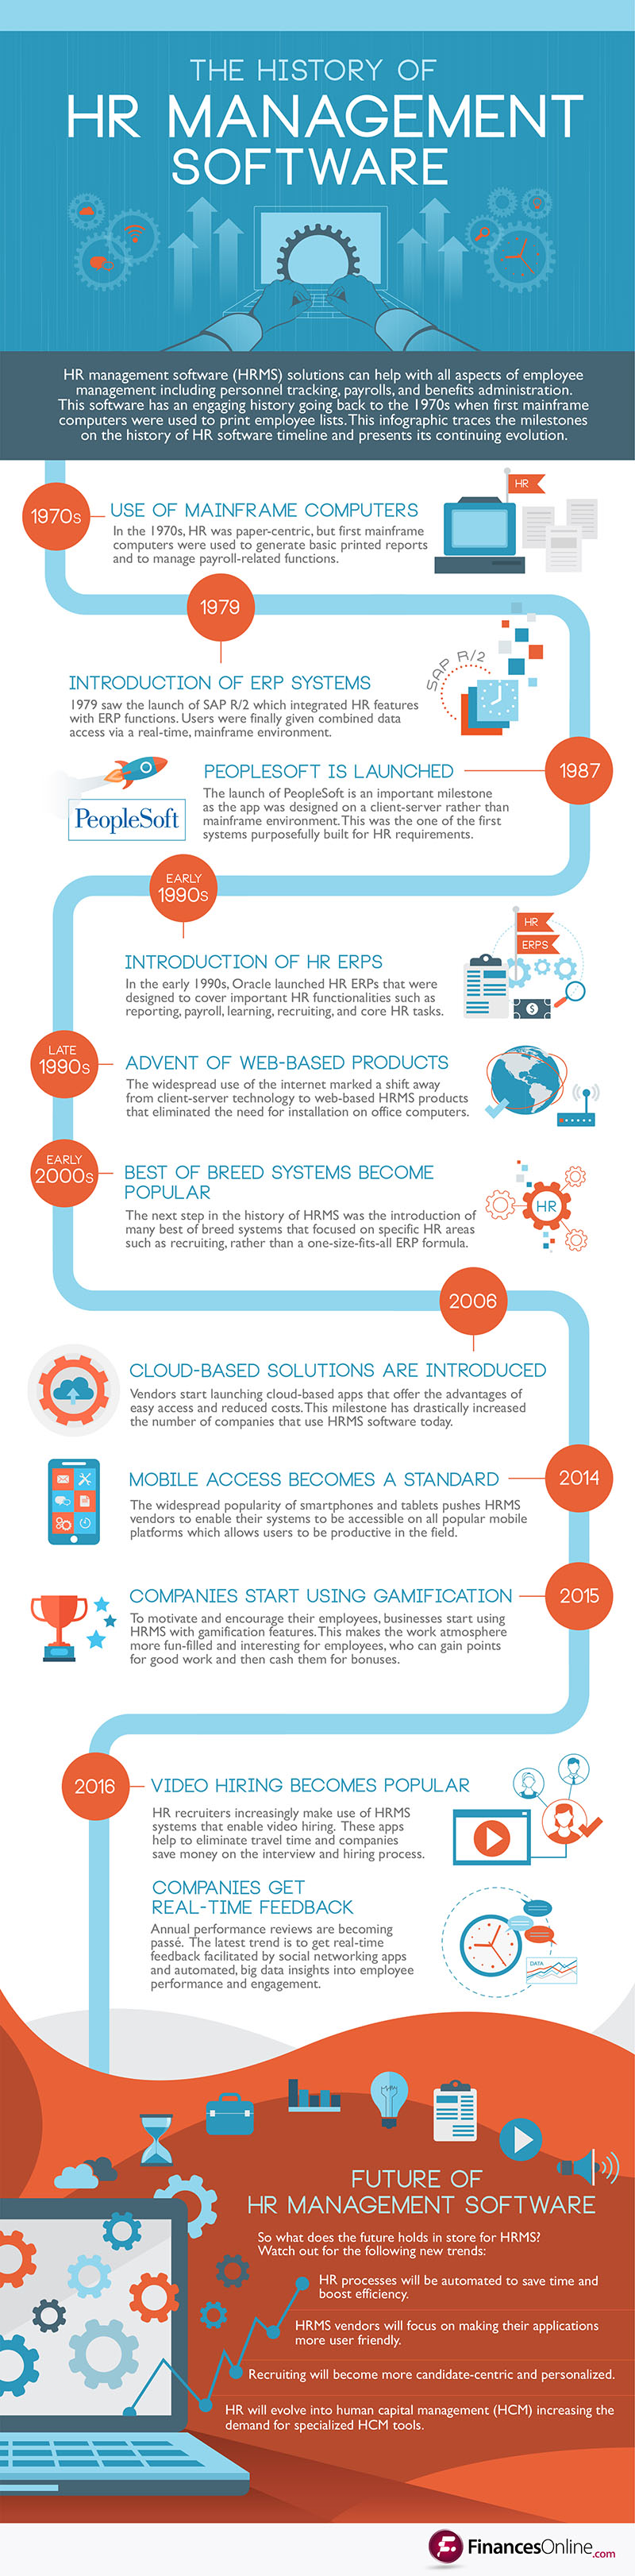 History of HR Management Software_Infographic_finale